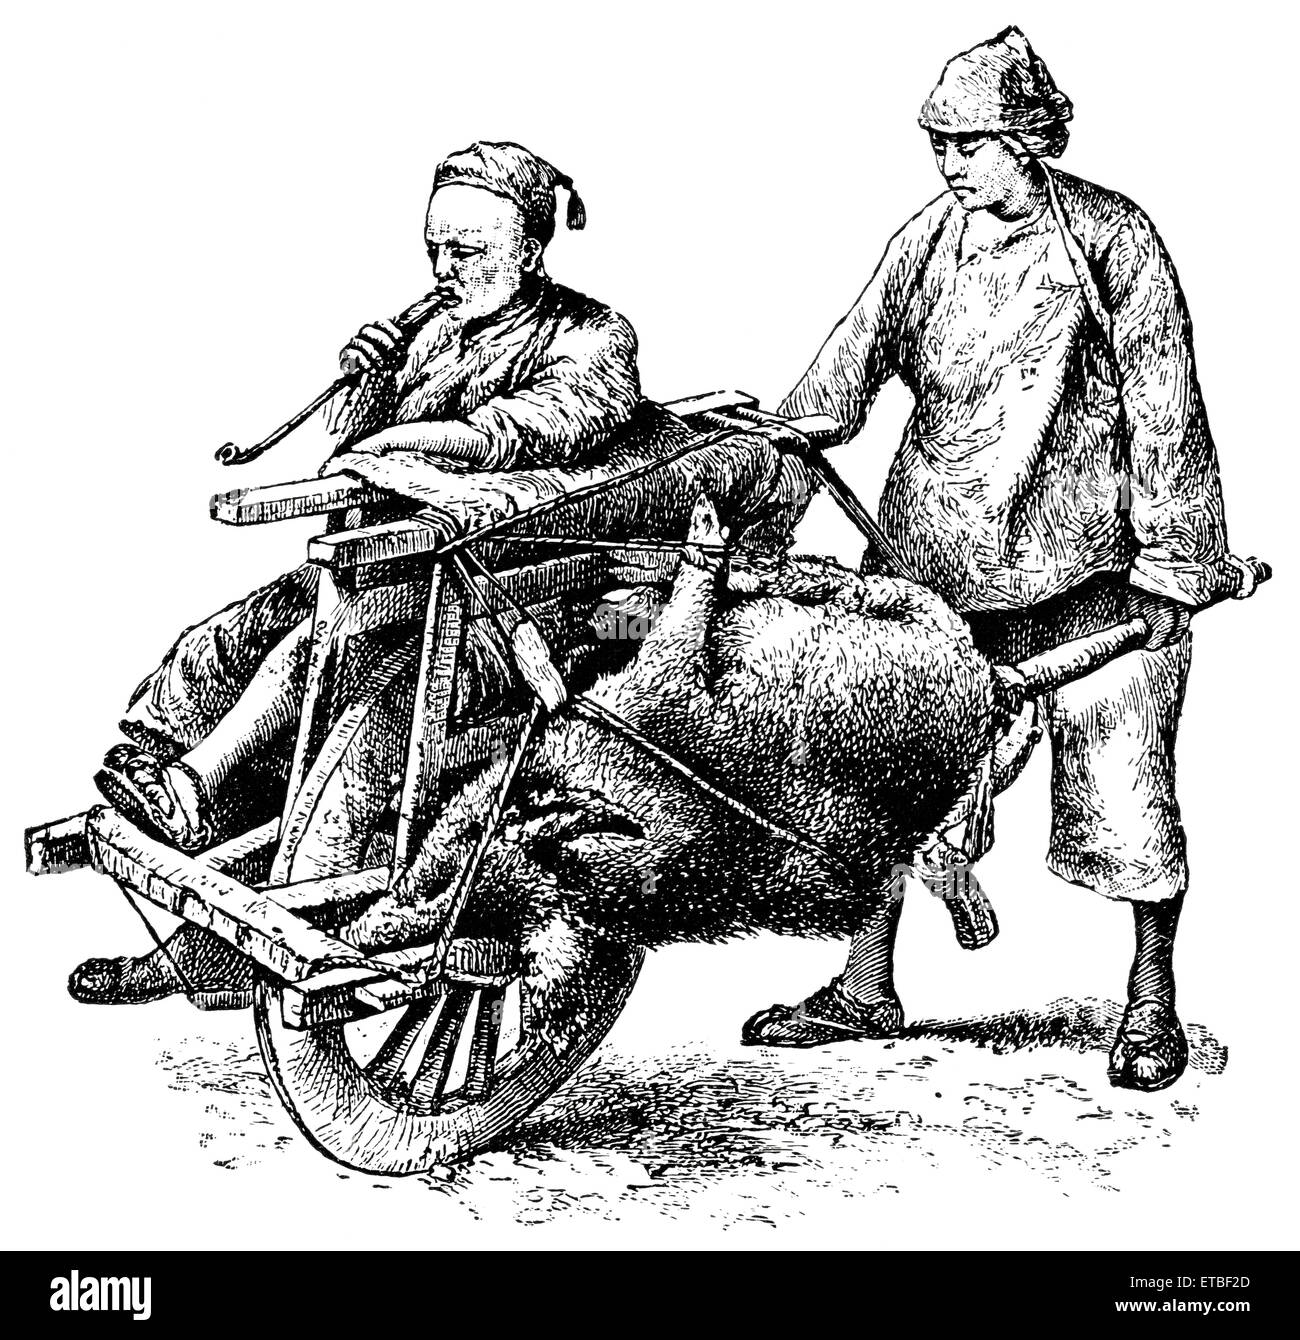 Man and Dead Animal Being Transported on Single-Wheel Cart, China, 'Classical Portfolio of Primitive Carriers', - Stock Image